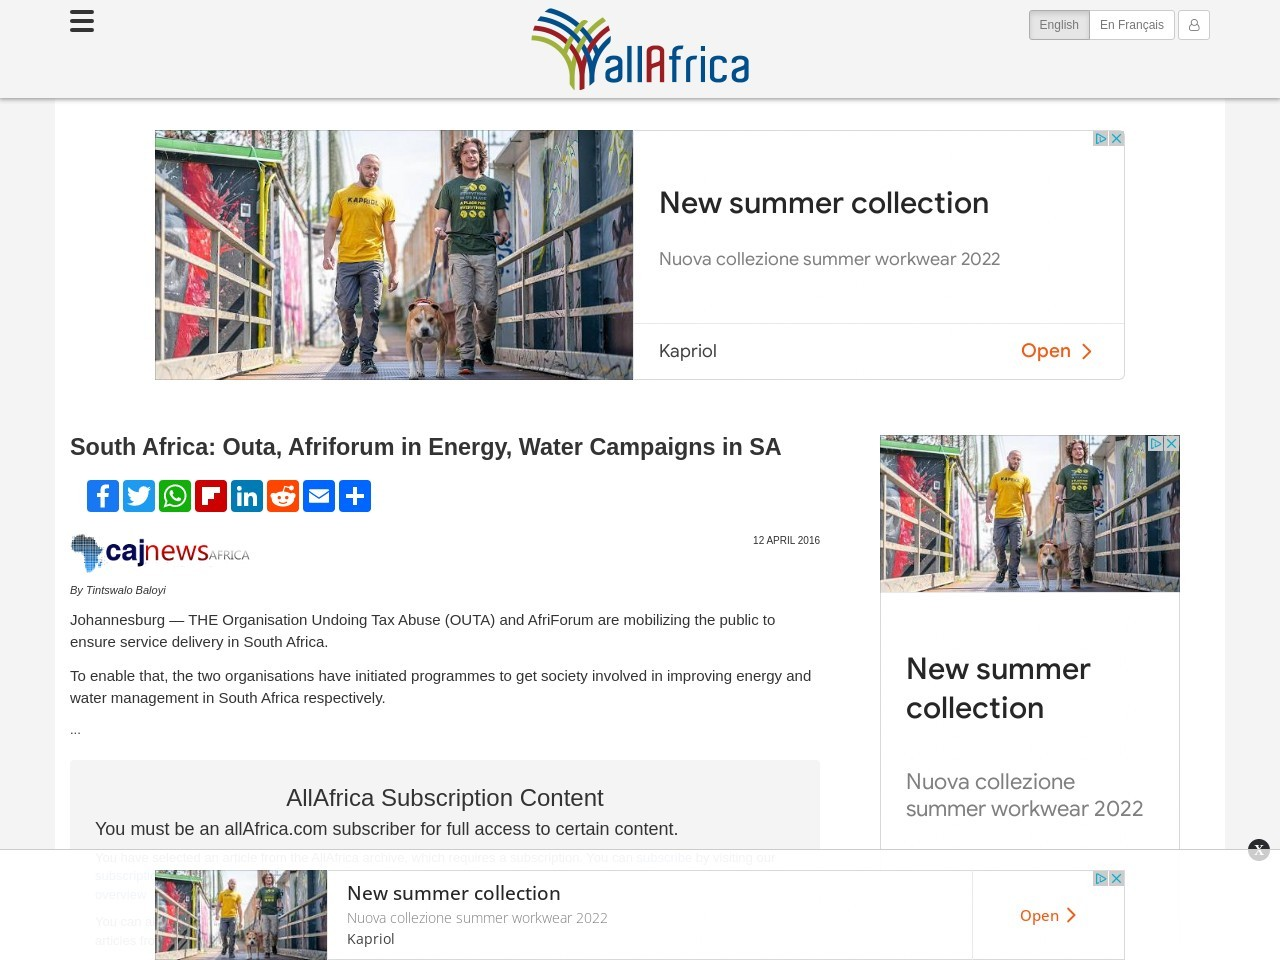 South Africa: Outa, Afriforum in Energy, Water Campaigns in SA